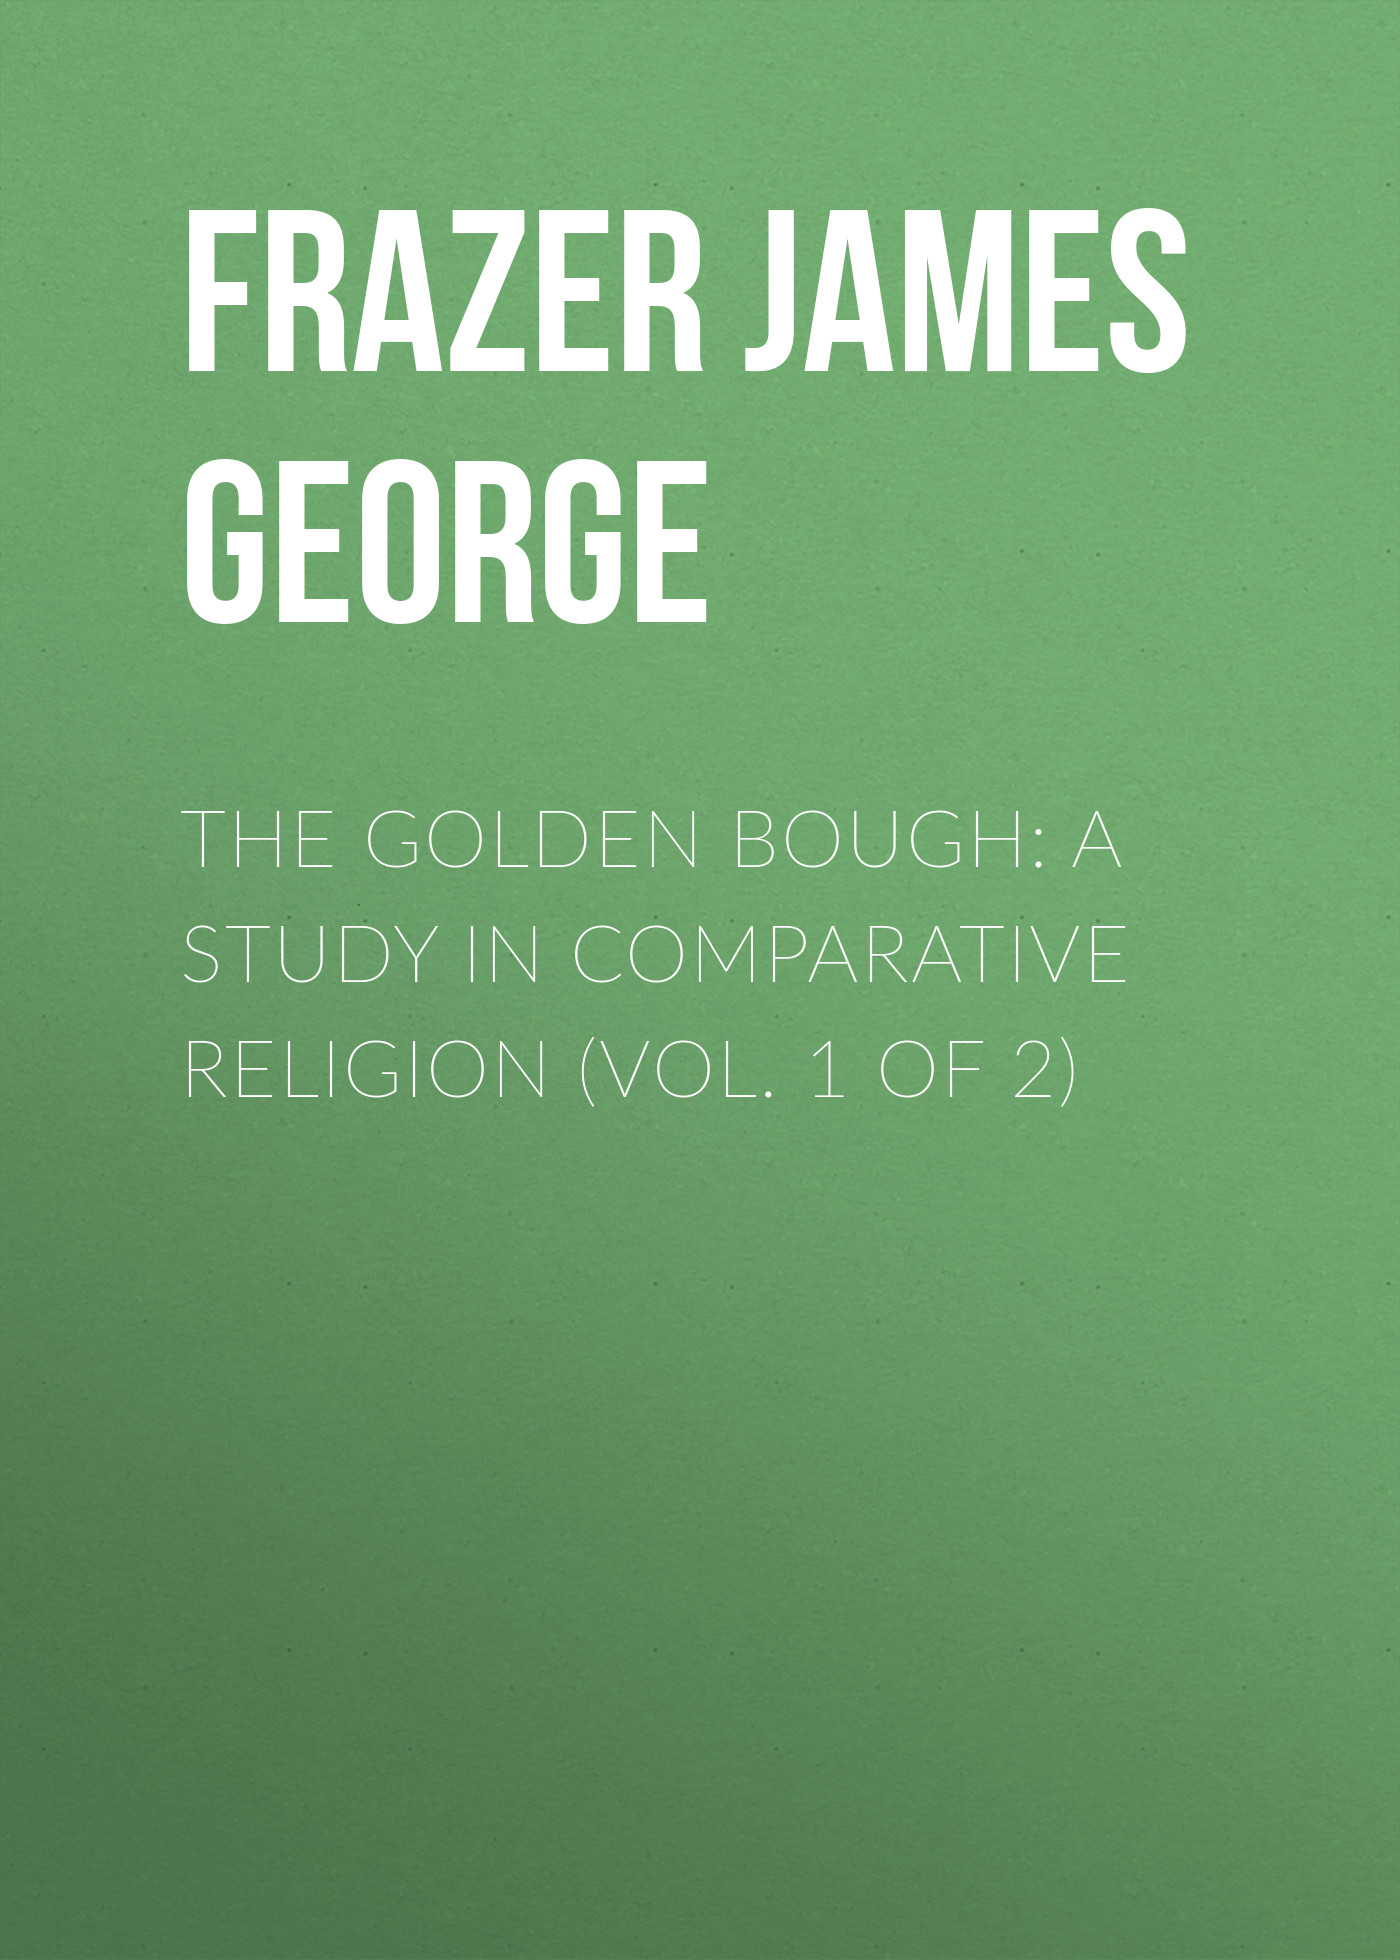 Frazer James George The Golden Bough: A Study in Comparative Religion (Vol. 1 of 2) frazer james george the belief in immortality and the worship of the dead volume 2 of 3